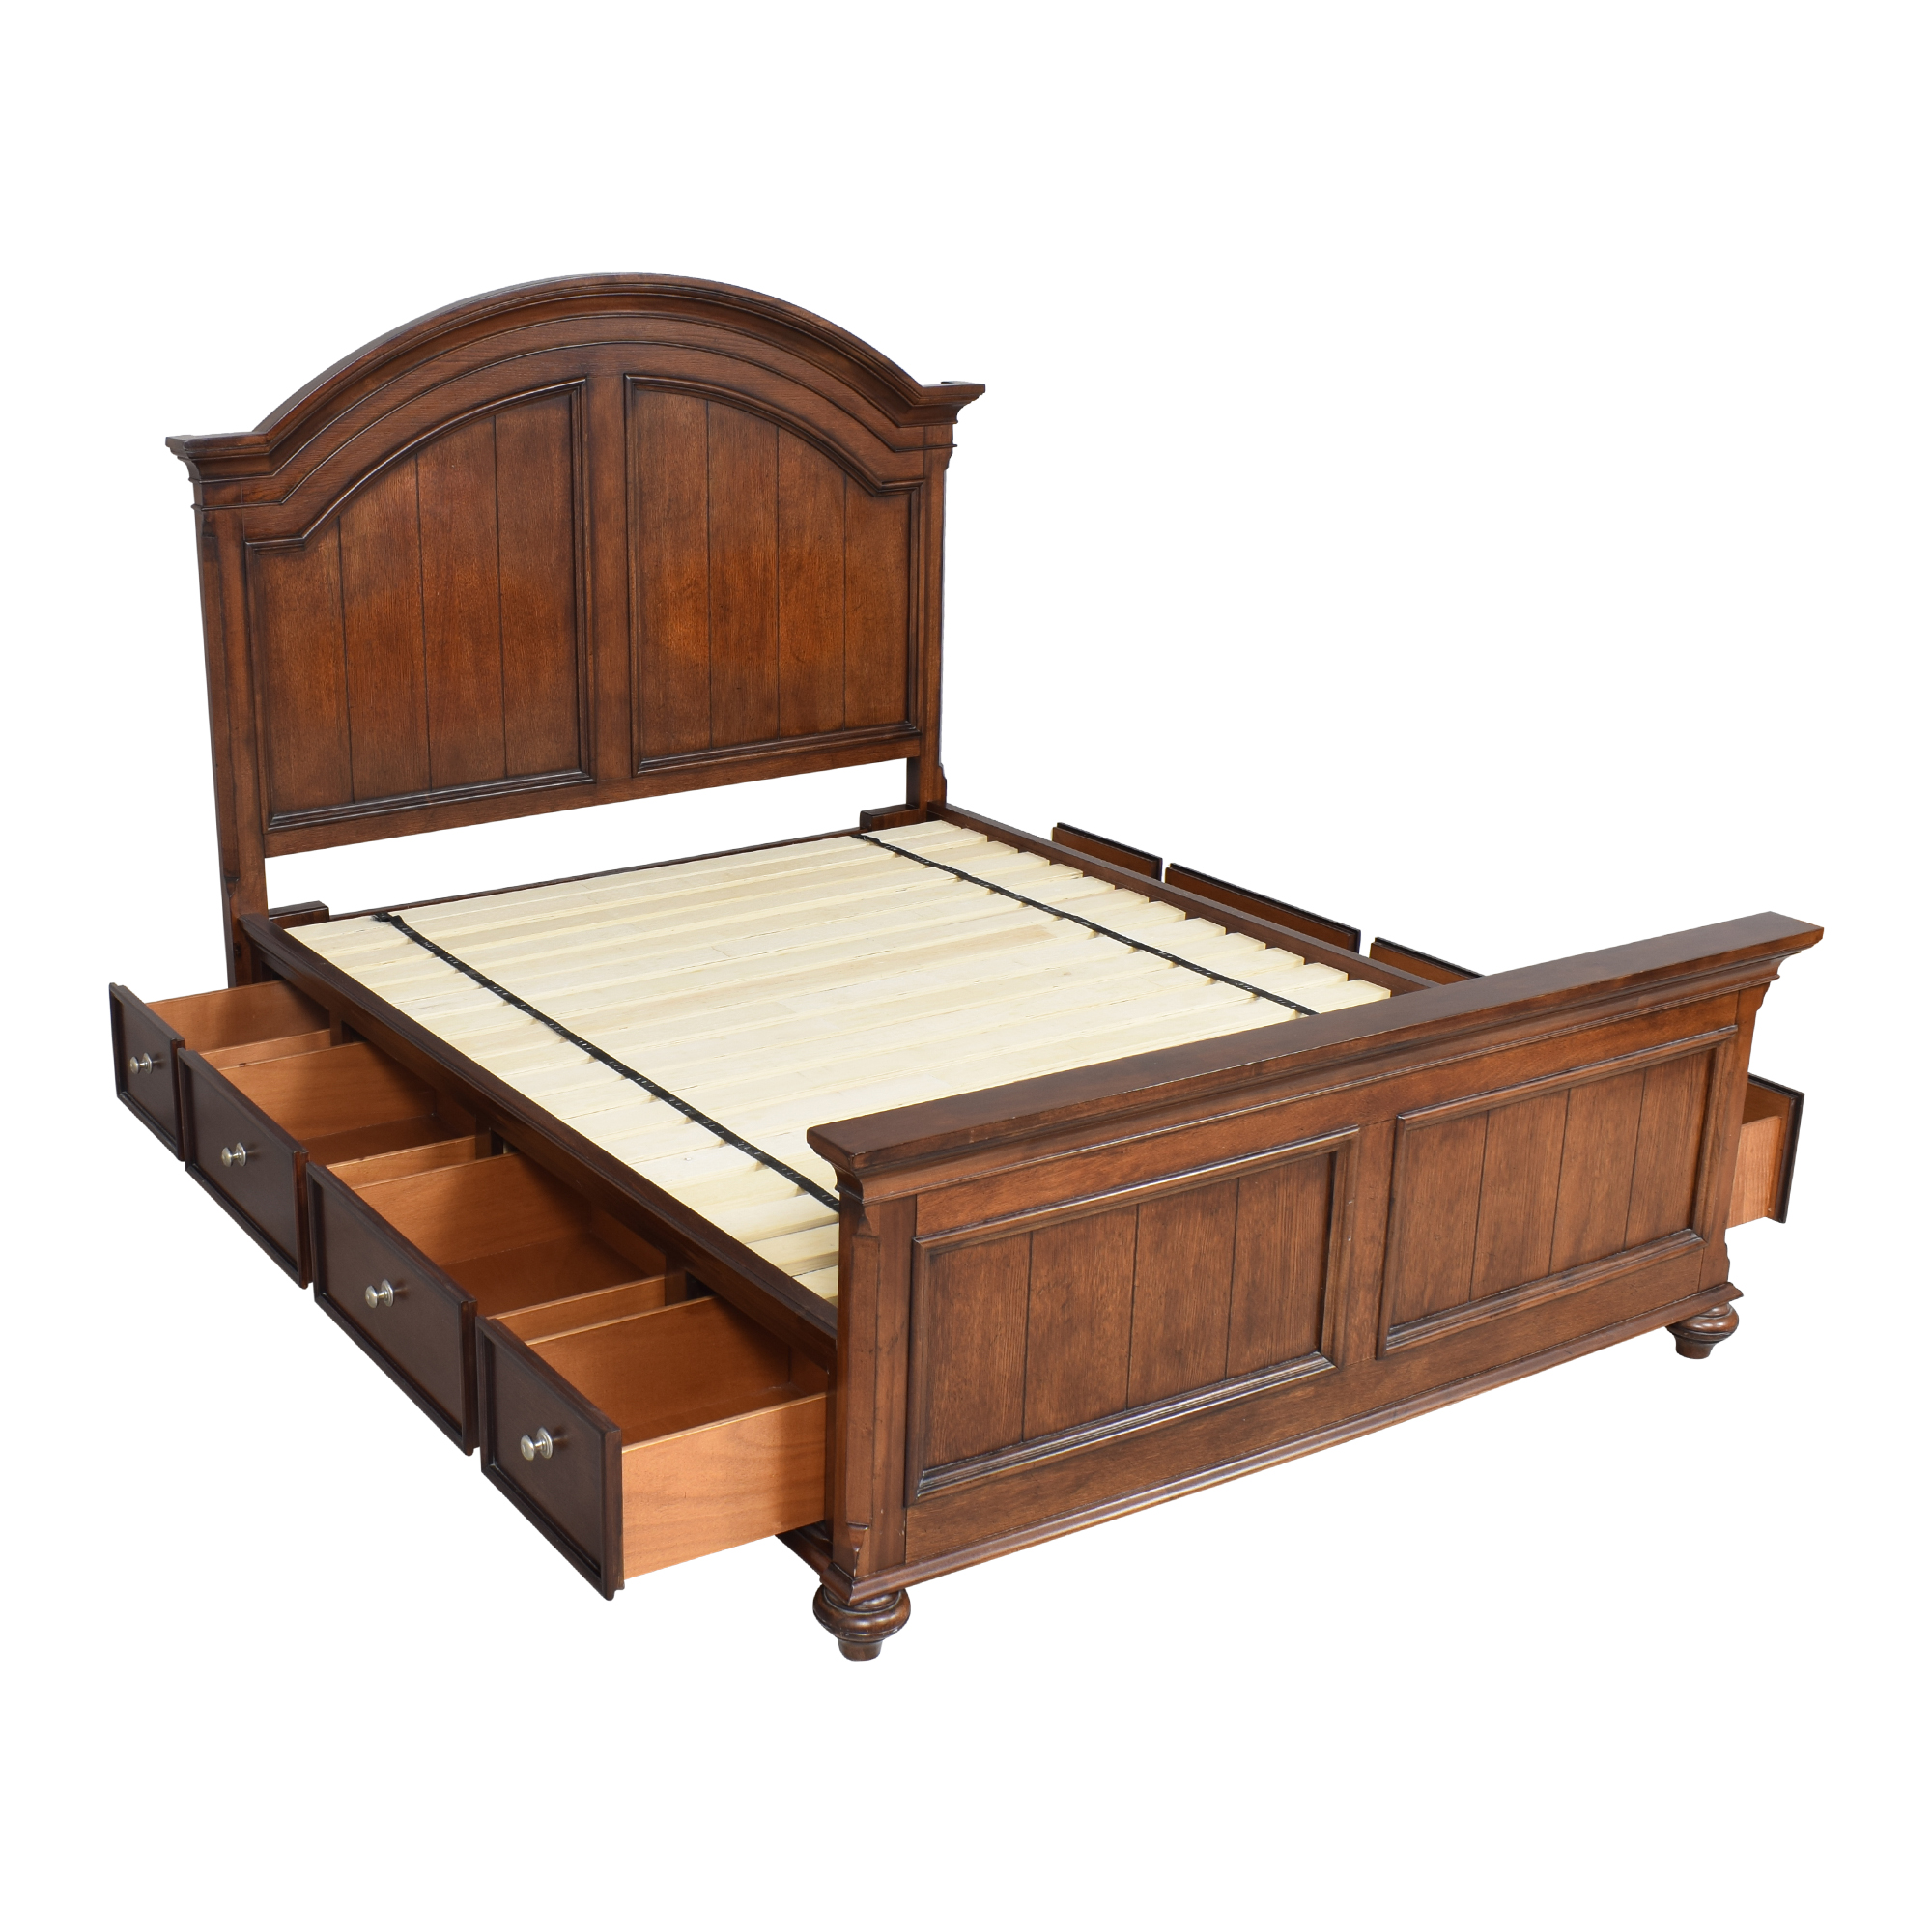 Raymour & Flanigan Legacy Storage Queen Bed sale